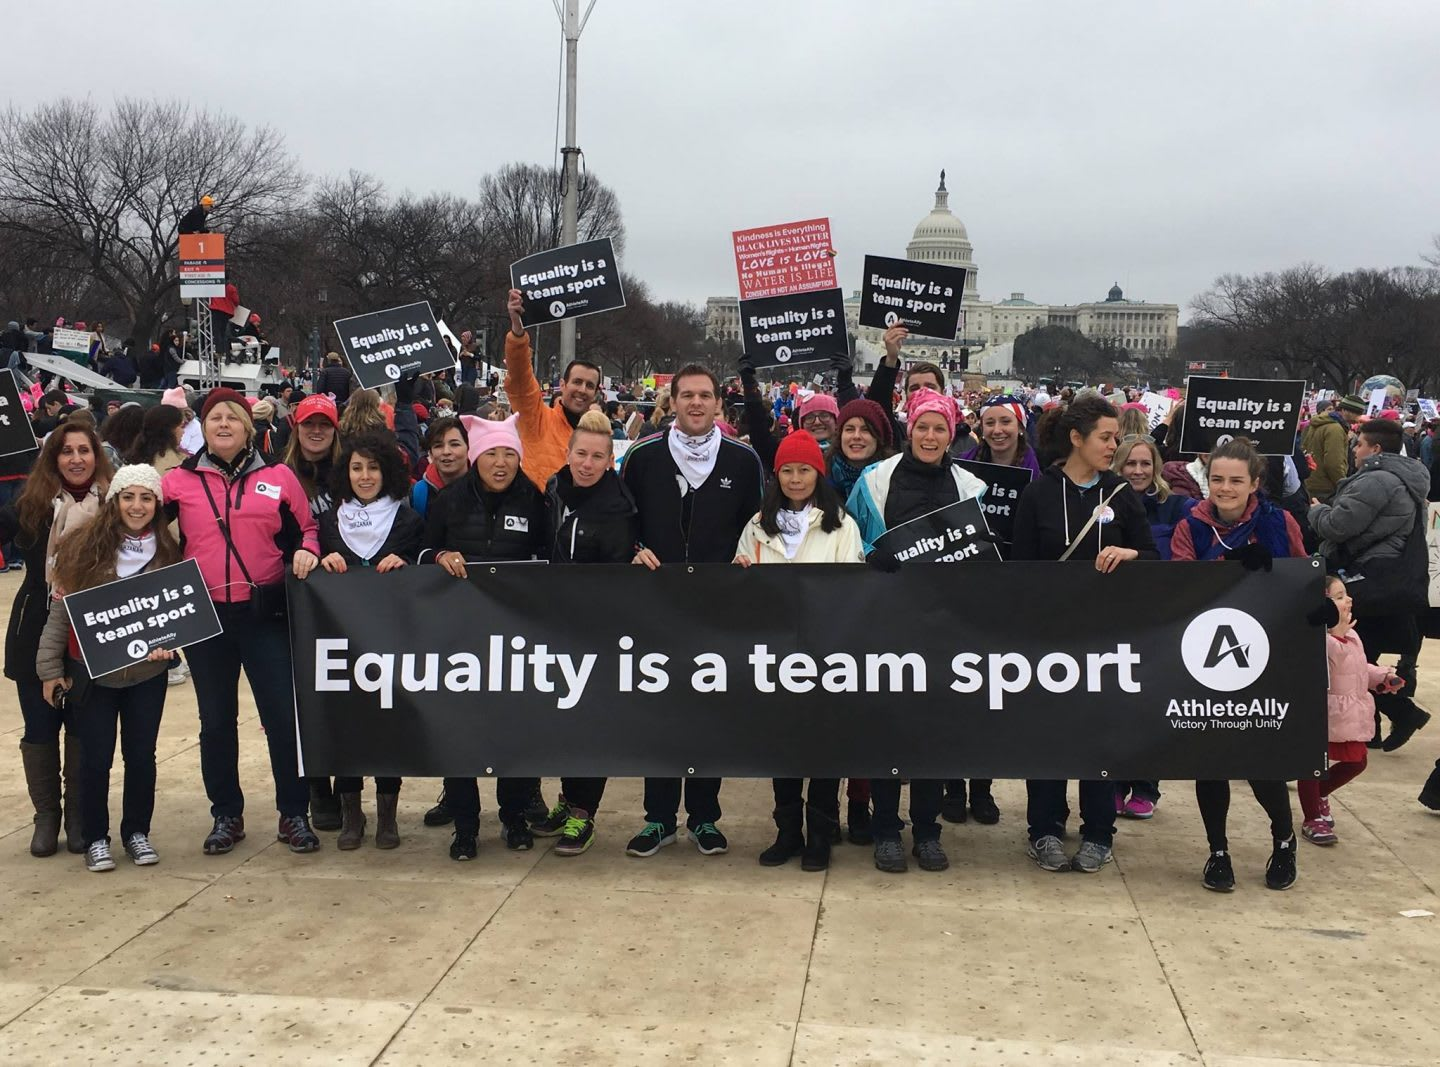 A group of people standing in front of the US Capitol holding a sign together which says: